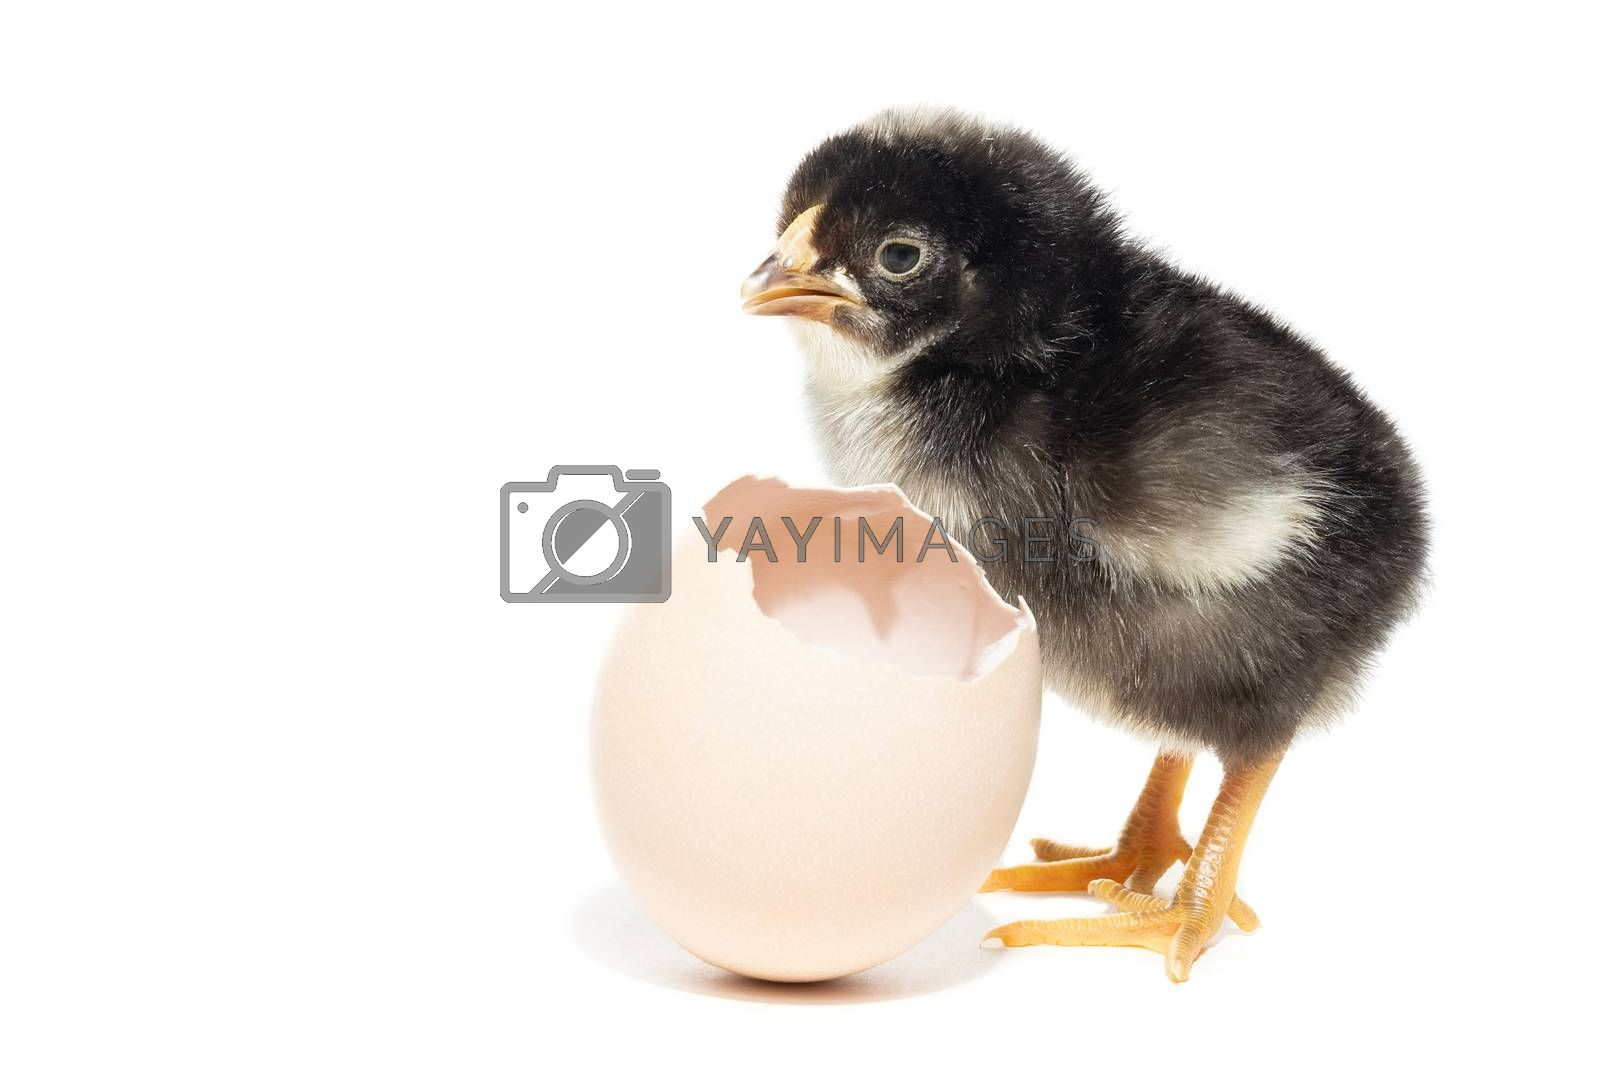 Chicken hatched from the shell, yellow chicken, village, summer